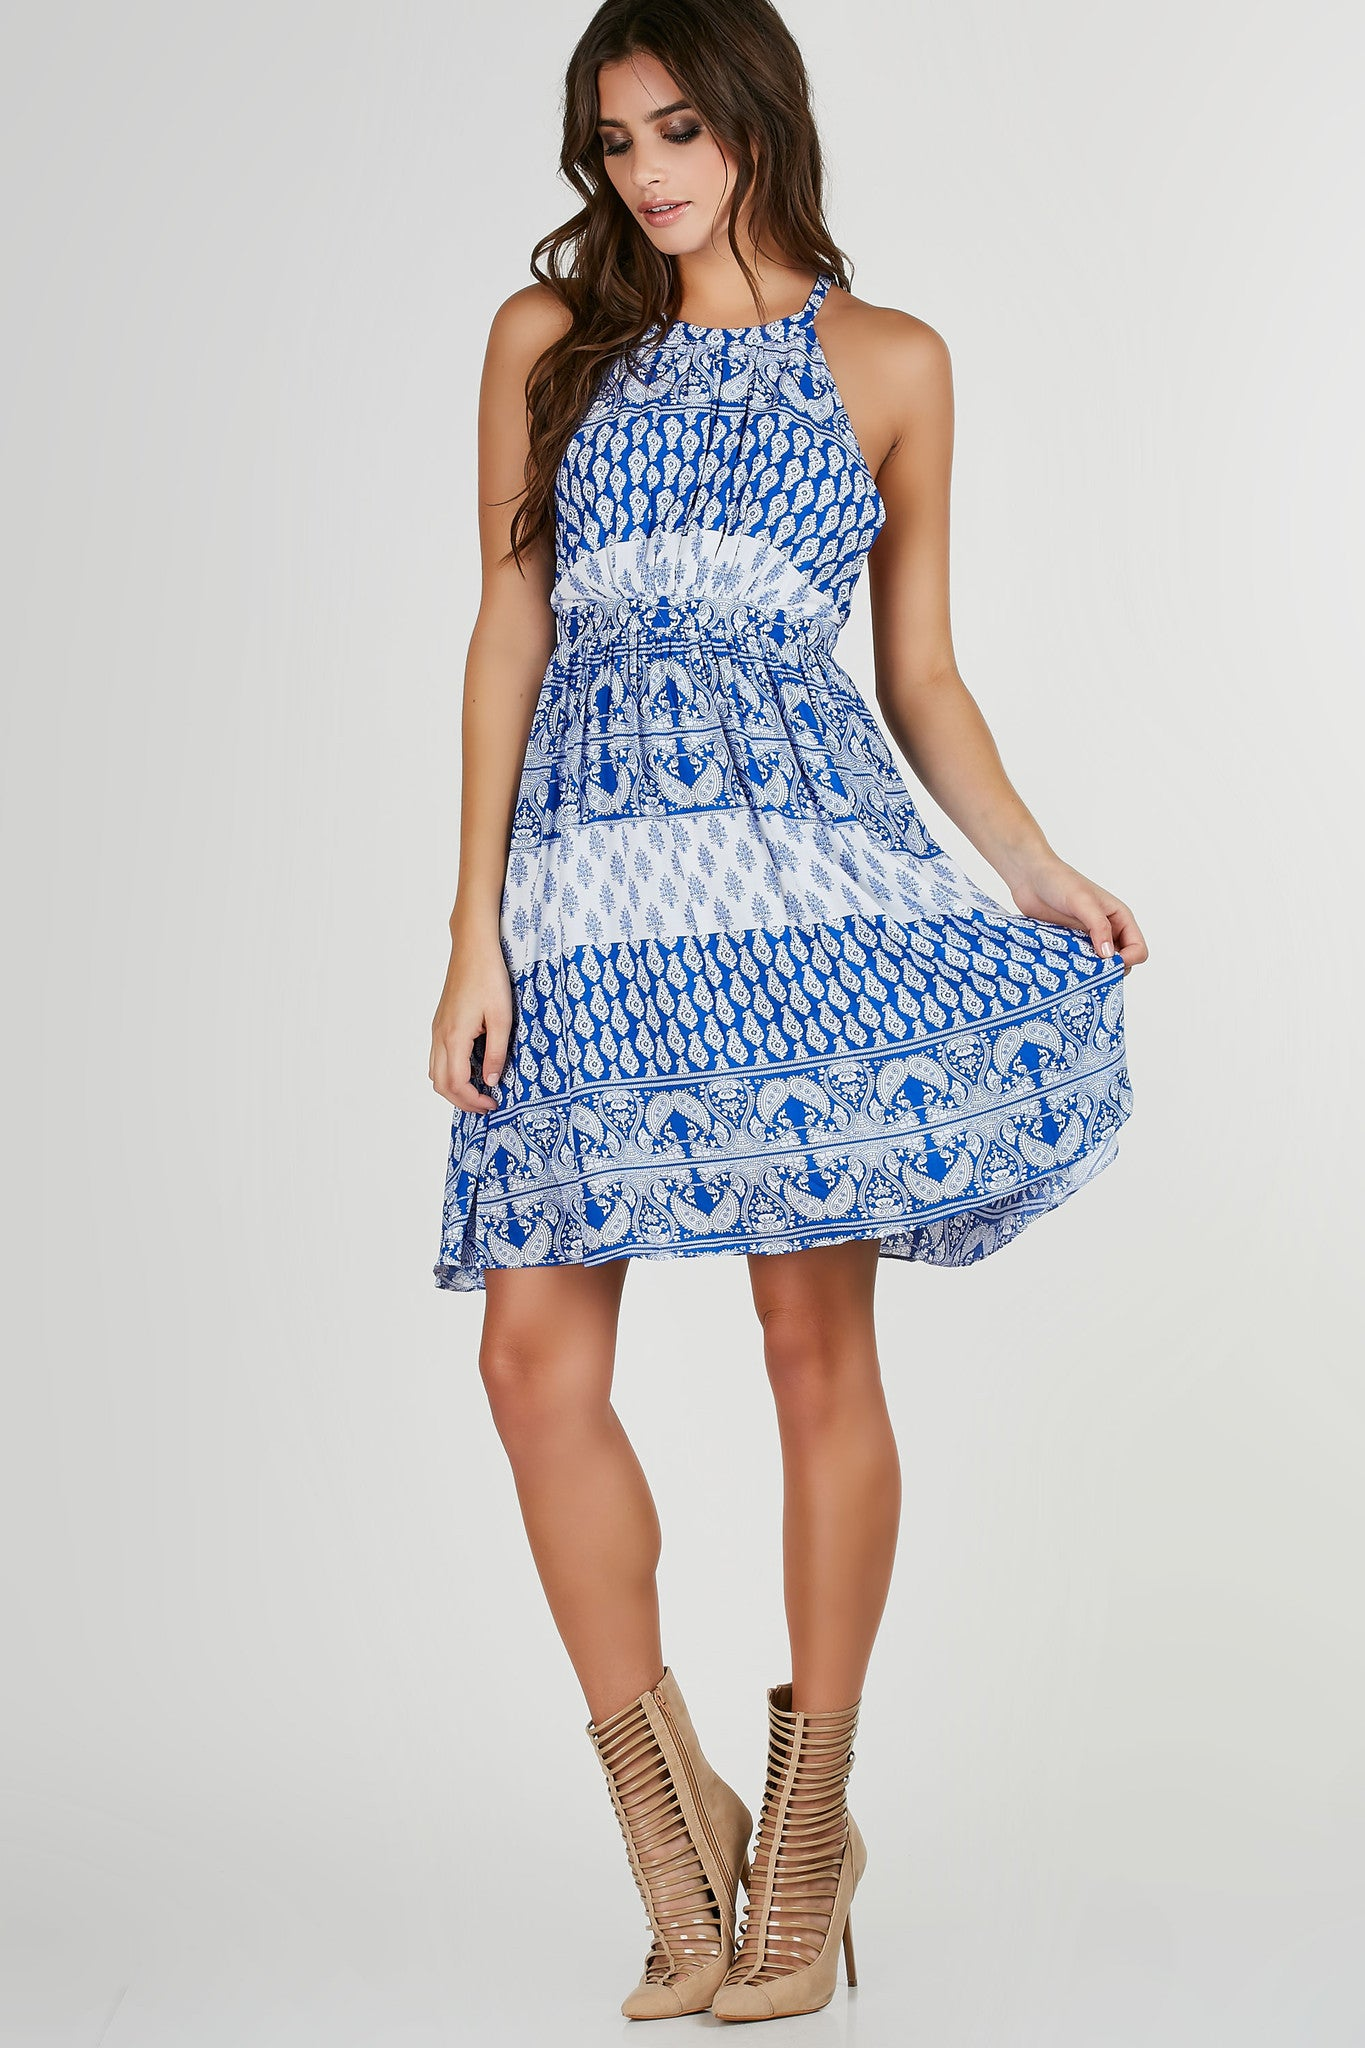 High neck sleeveless dress with intricate paisley prints throughout. Open back with strap detailing and flared hem.